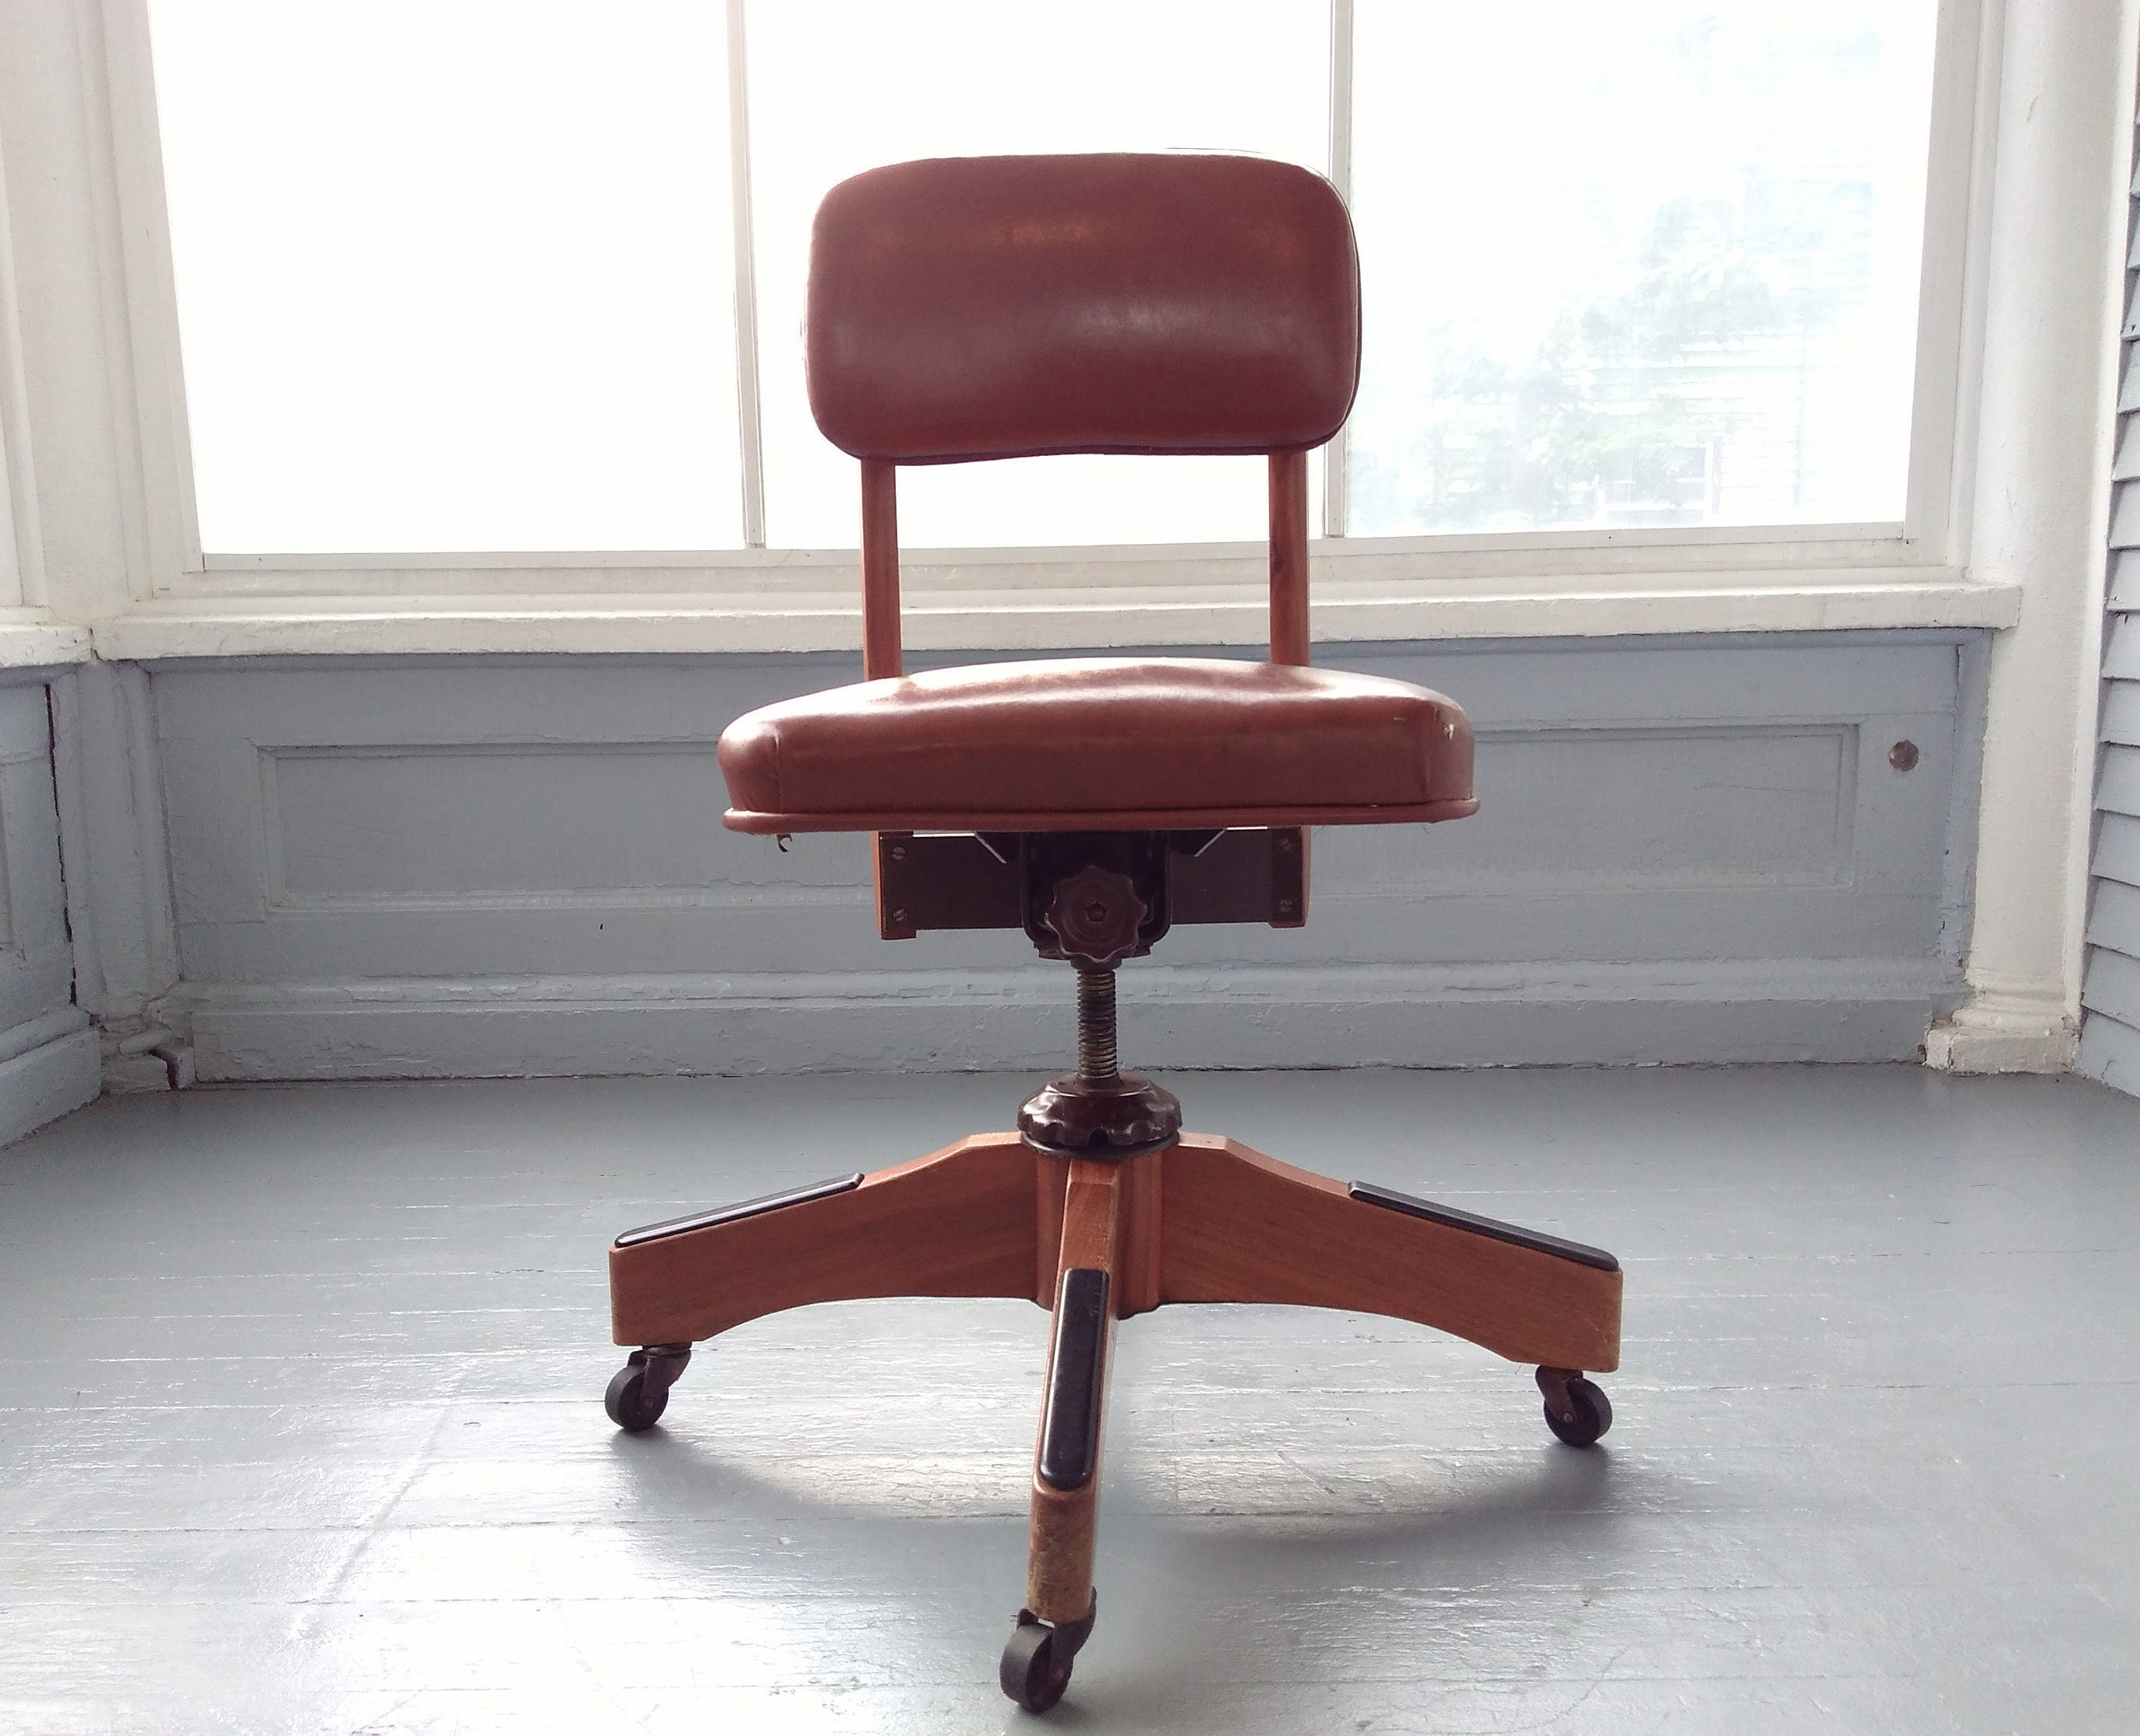 Fine Vintage Midcentury Industrial Office Chair Rolling Desk Chair Spiritservingveterans Wood Chair Design Ideas Spiritservingveteransorg